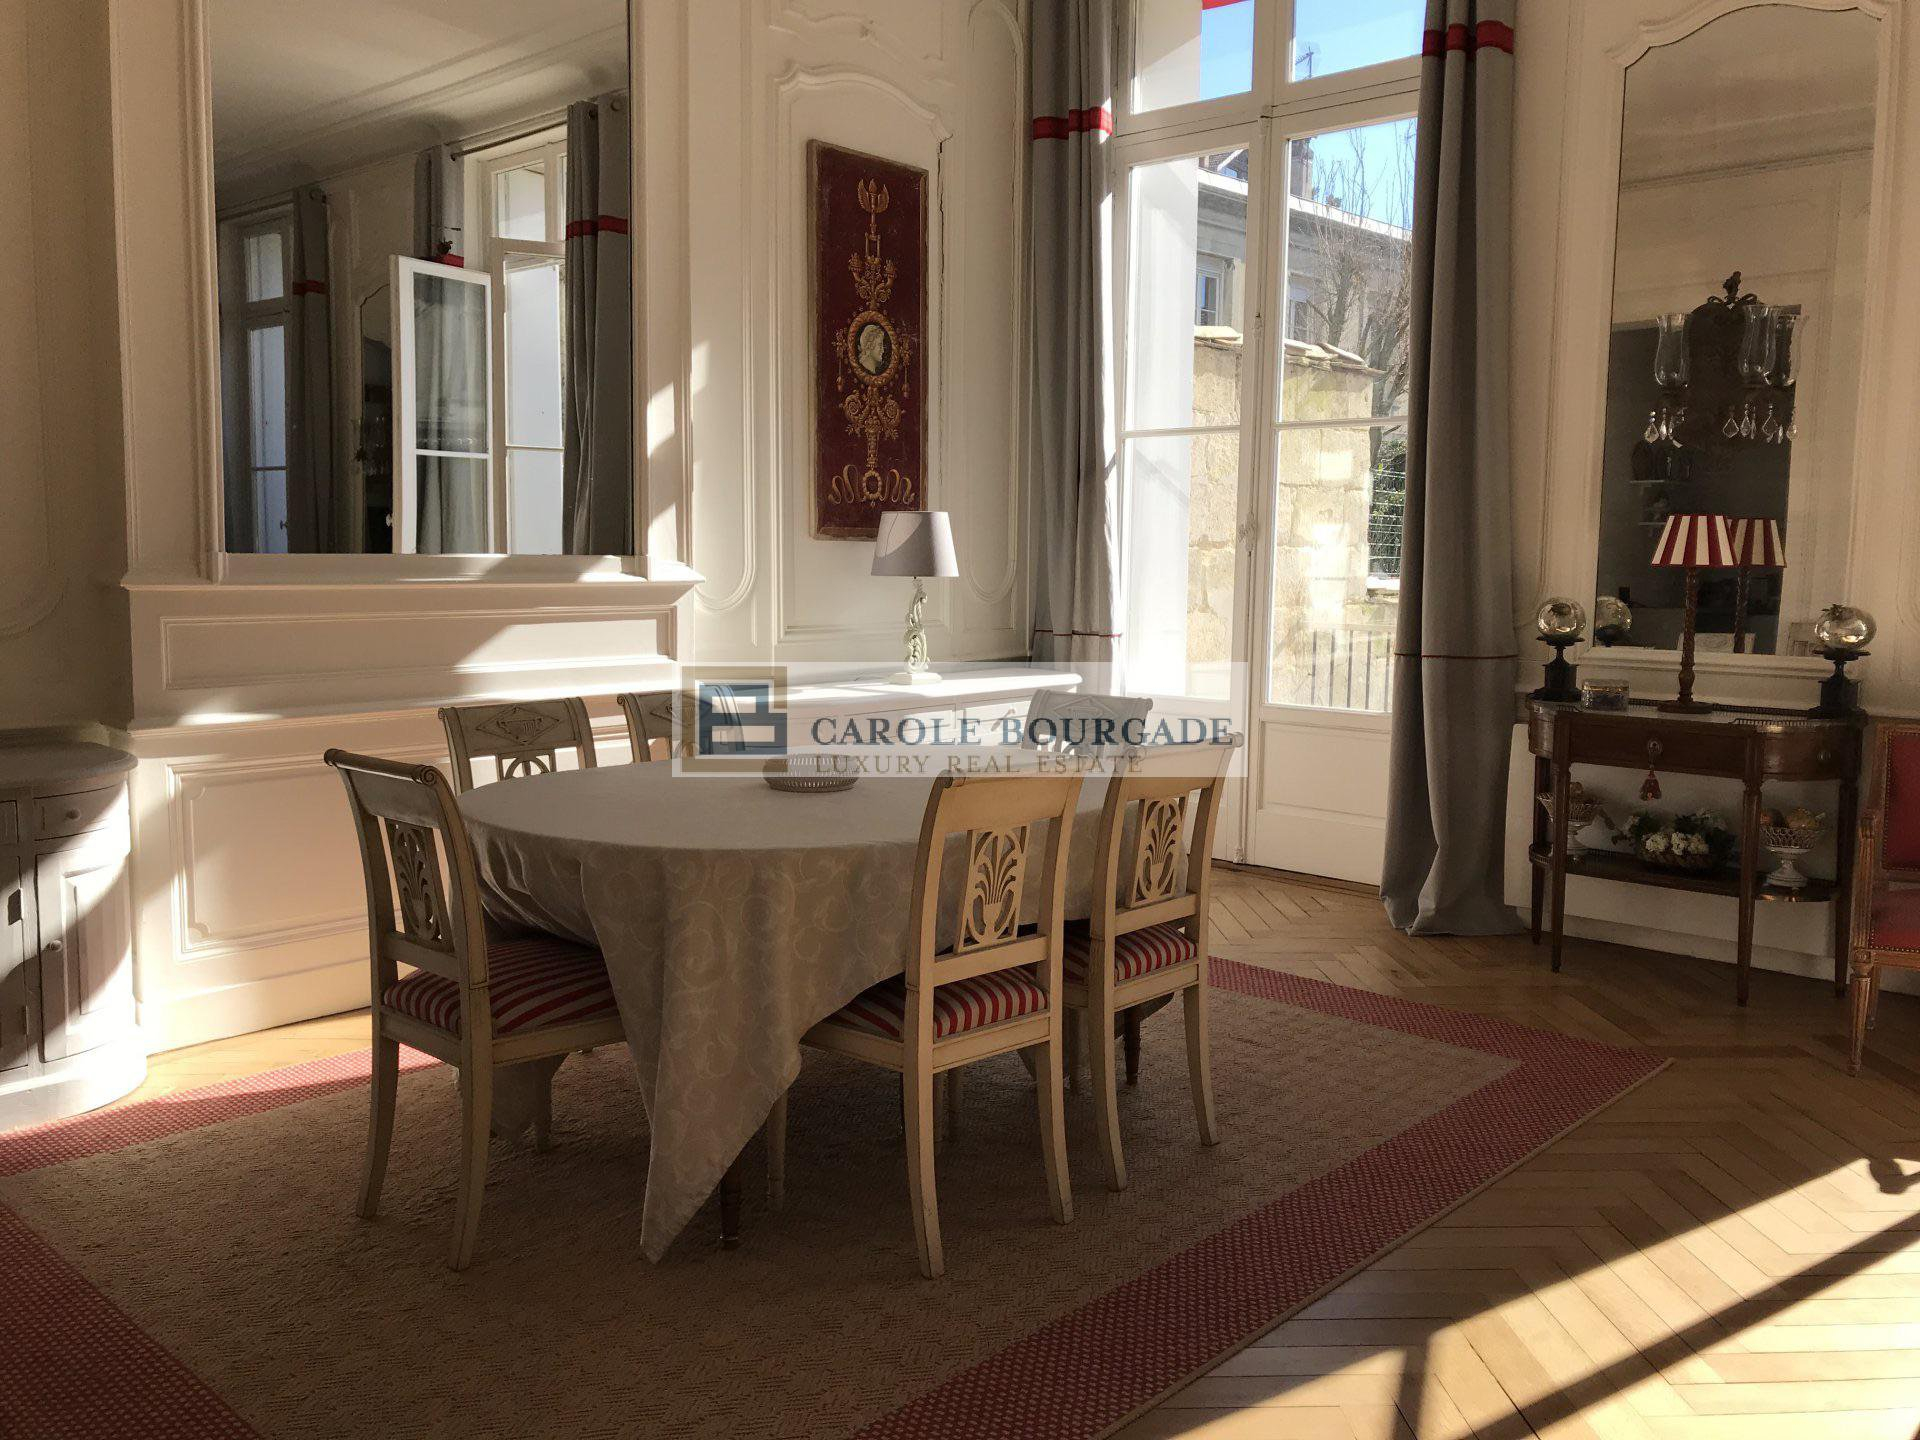 Seasonal rental Apartment - Bordeaux